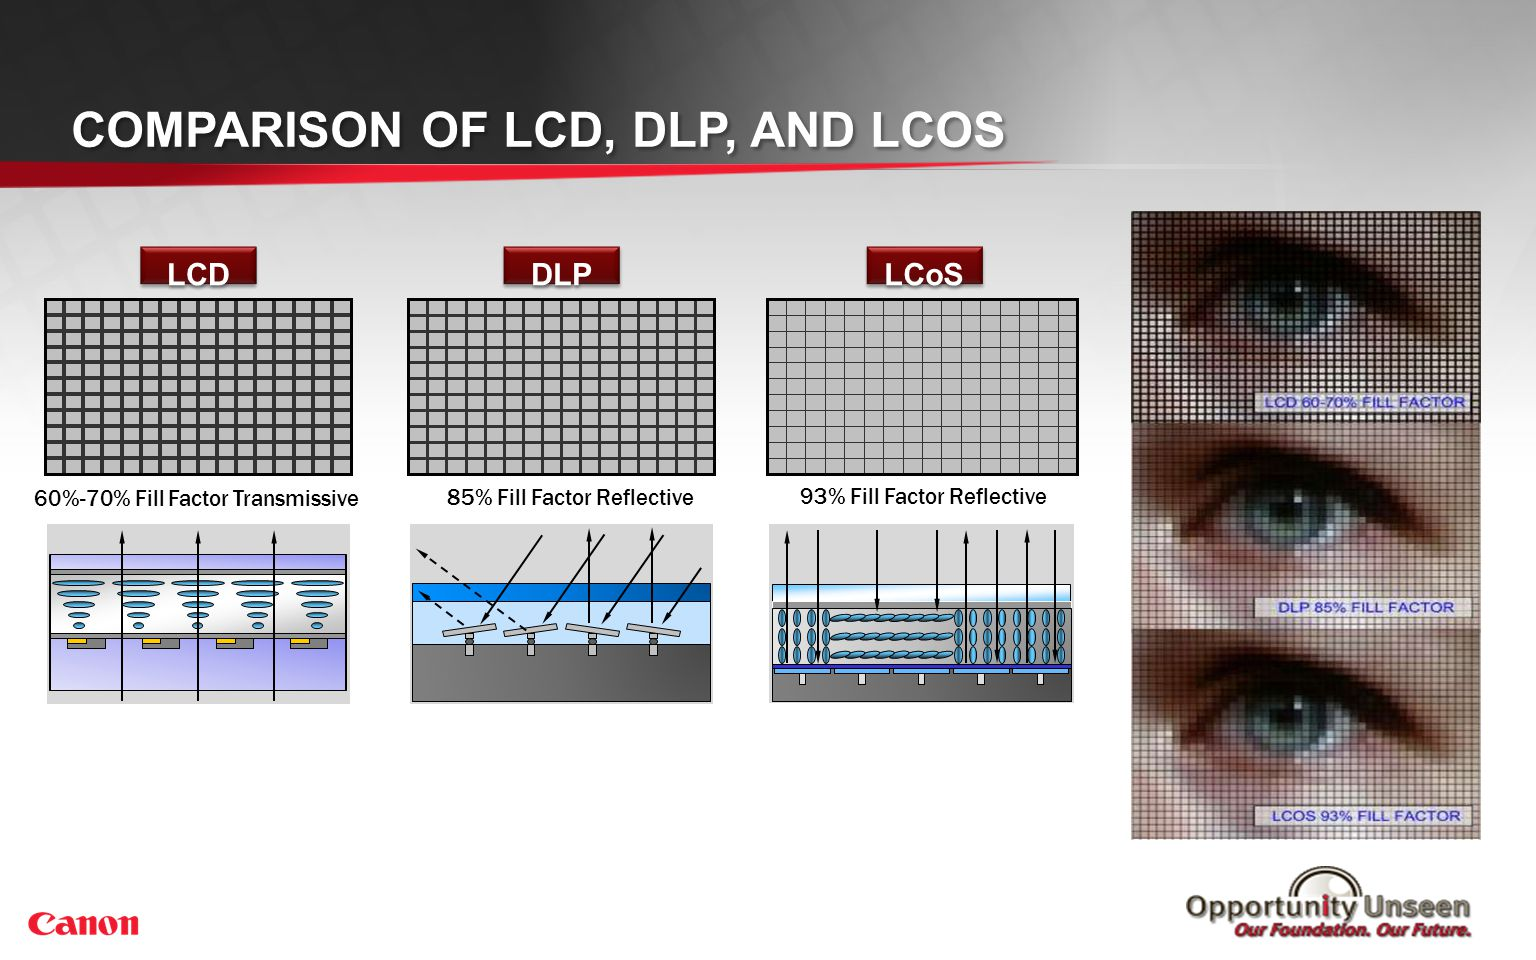 LCD DLP LCoS 85% Fill Factor Reflective 93% Fill Factor Reflective 60%-70% Fill Factor Transmissive COMPARISON OF LCD, DLP, AND LCOS